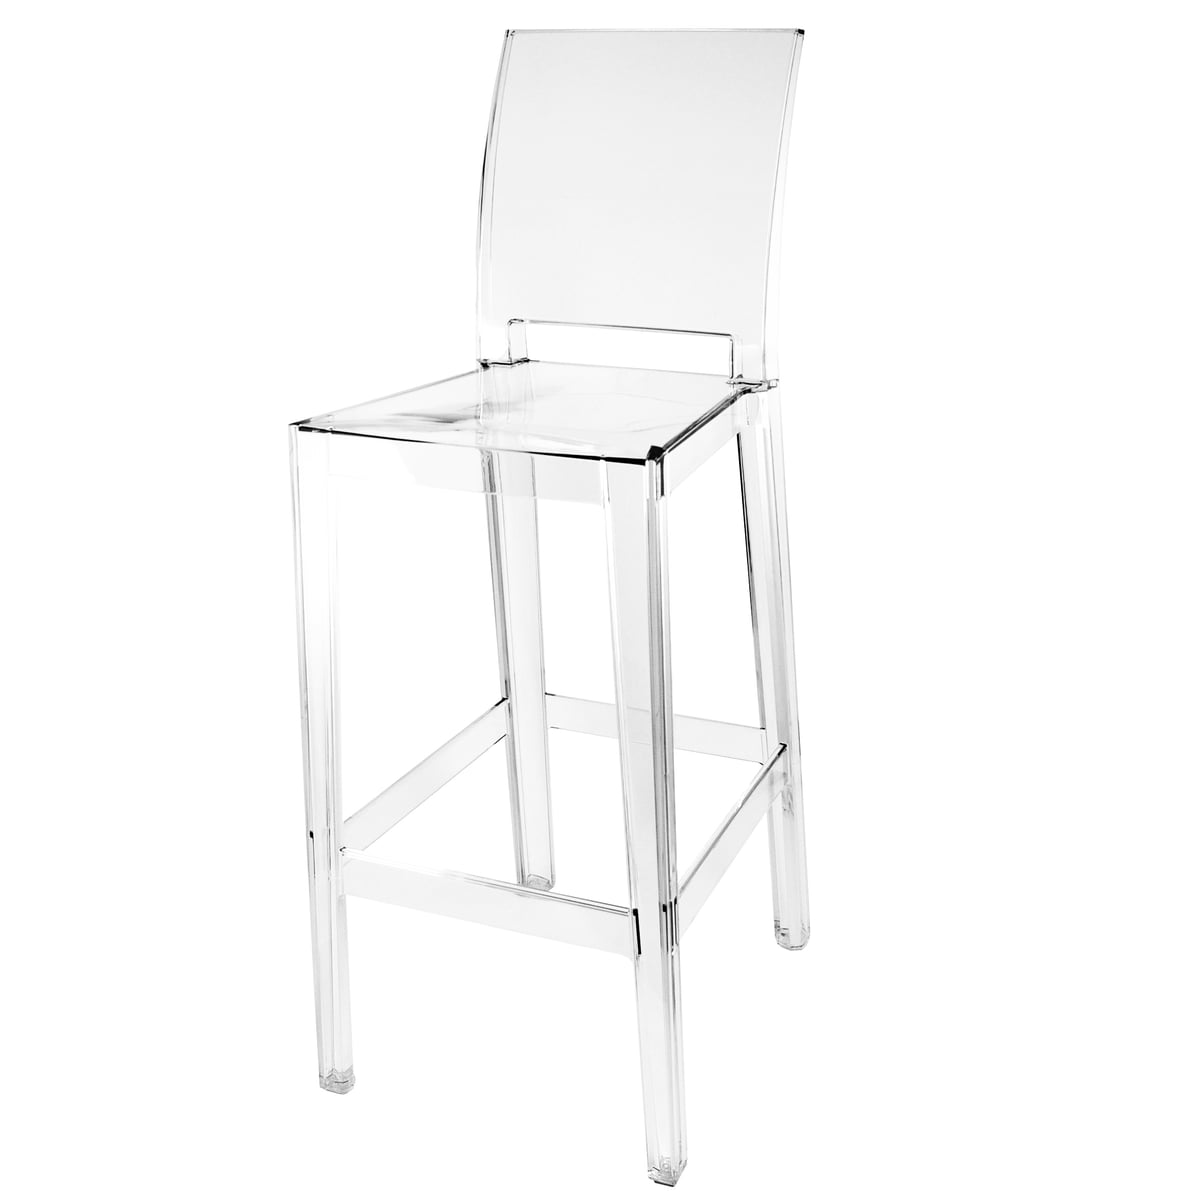 Shop More Bar Bar One StoolKartell Shop More StoolKartell One F35T1luKJc